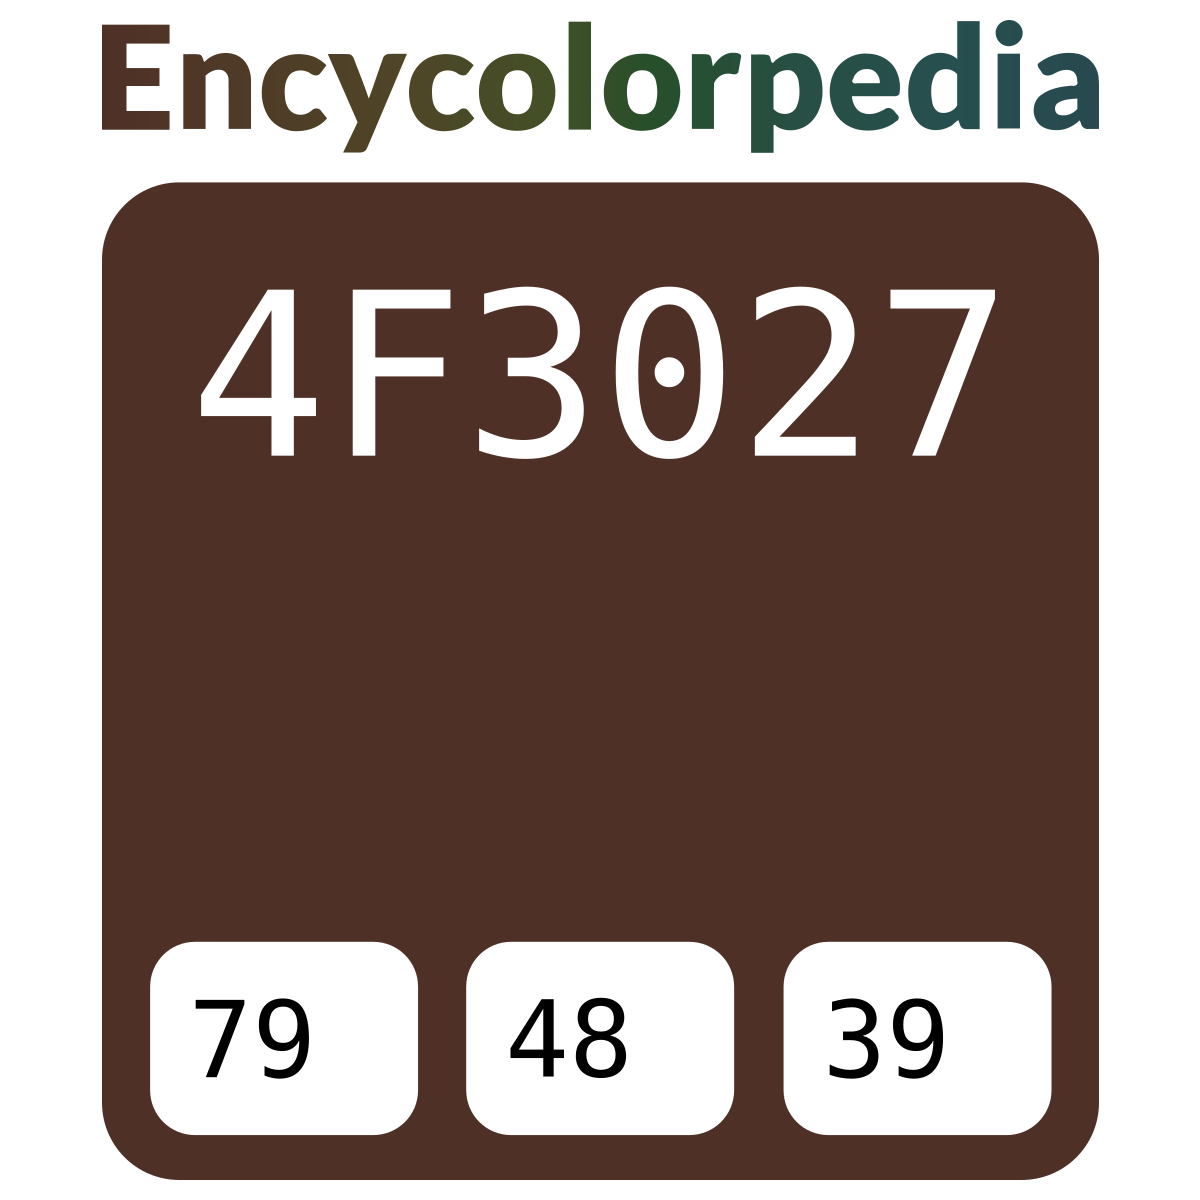 Tabella Colori Sikkens Ral sikkens c8.22.17 (ral 8016) / #4f3027 hex color code, rgb